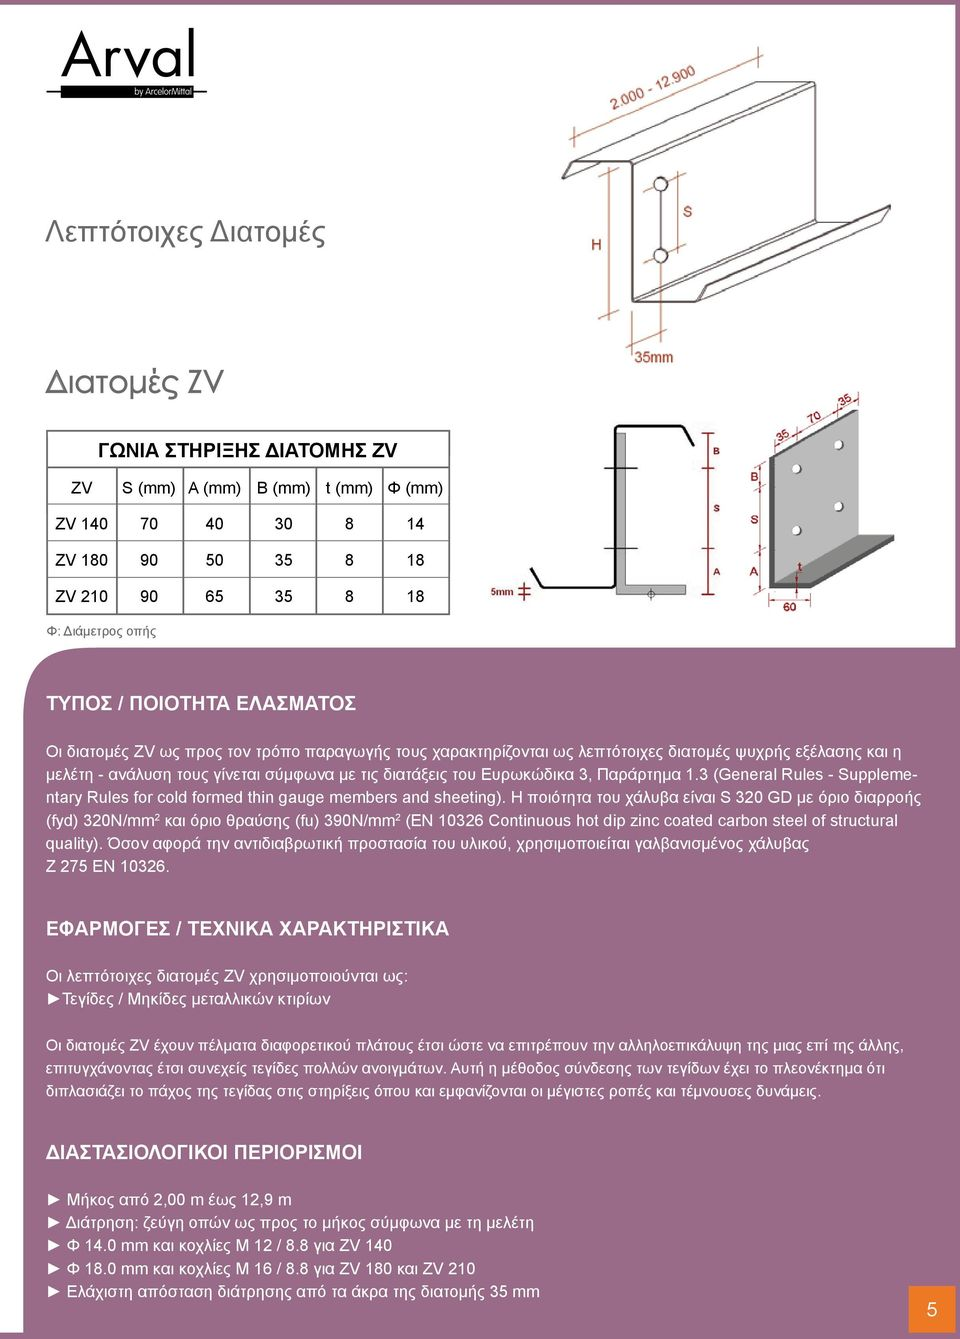 Παράρτημα 1.3 (General Rules - Supplementary Rules for cold formed thin gauge members and sheeting).